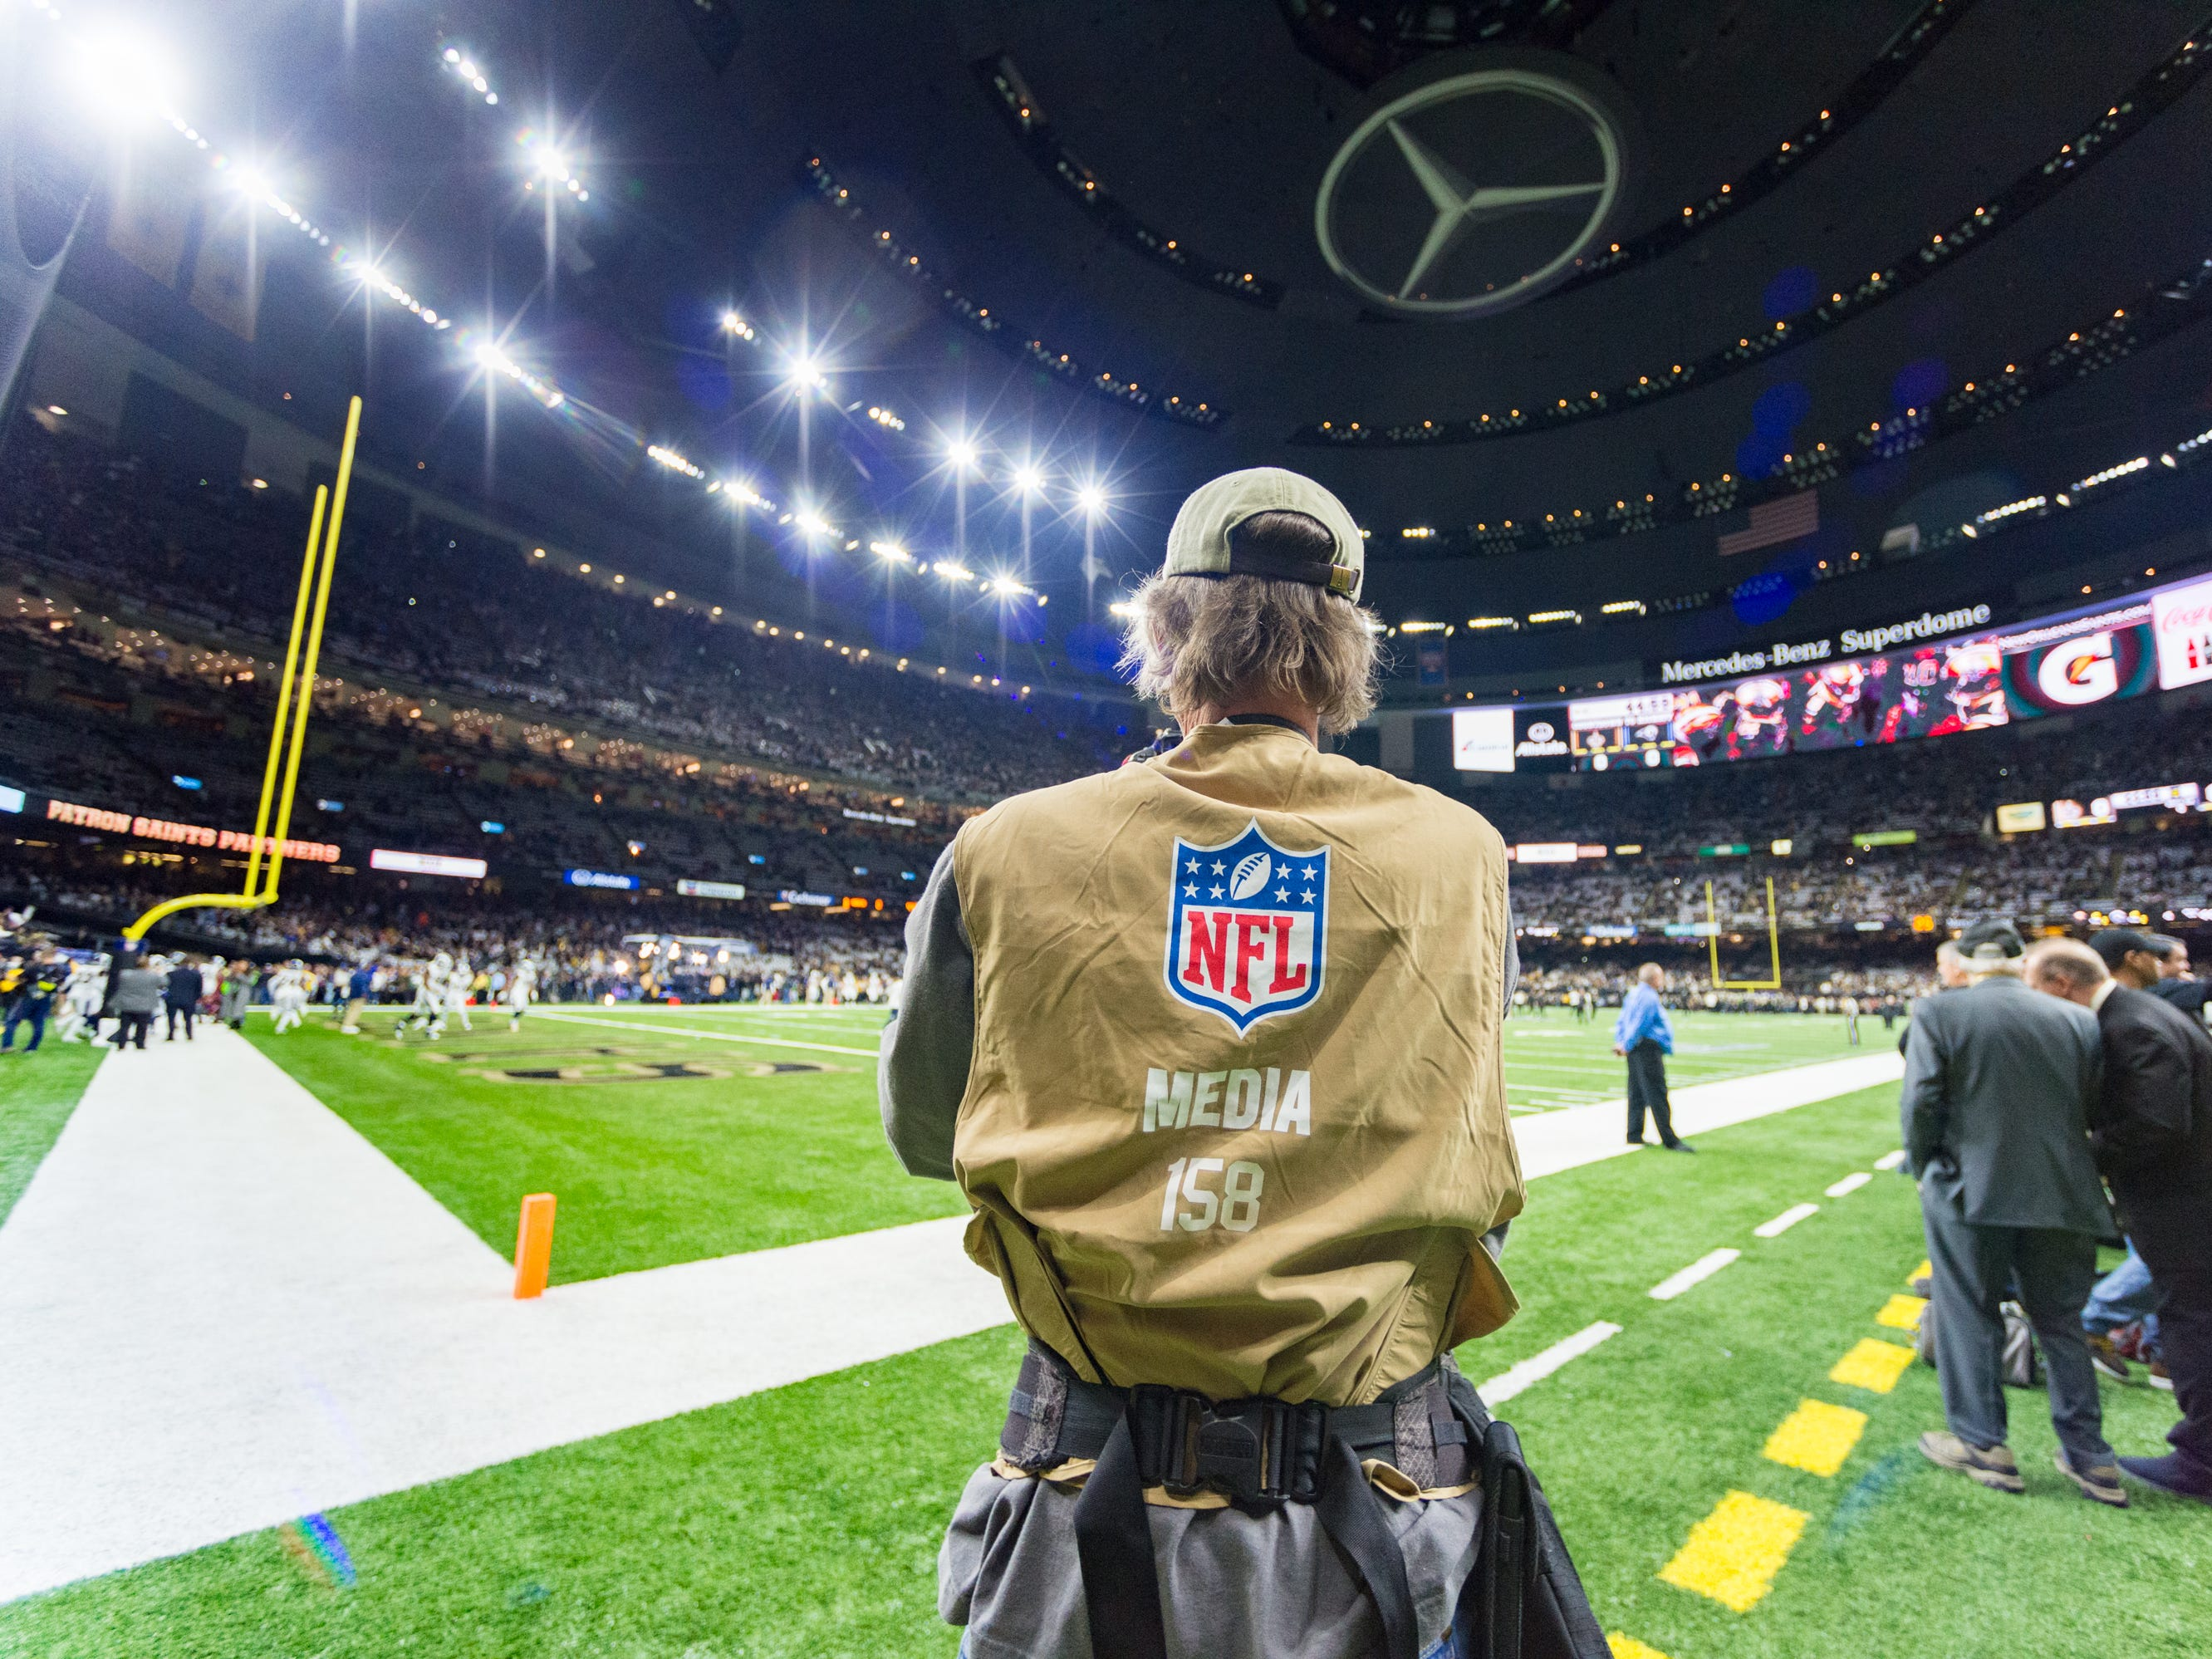 Photojournalist Mark Wallheiser on the sidelines during the NFC Championship playoff football game between the New Orleans Saints and the Los Angeles Rams at the Mercedes-Benz Superdome in New Orleans. Sunday, Jan. 20, 2019.